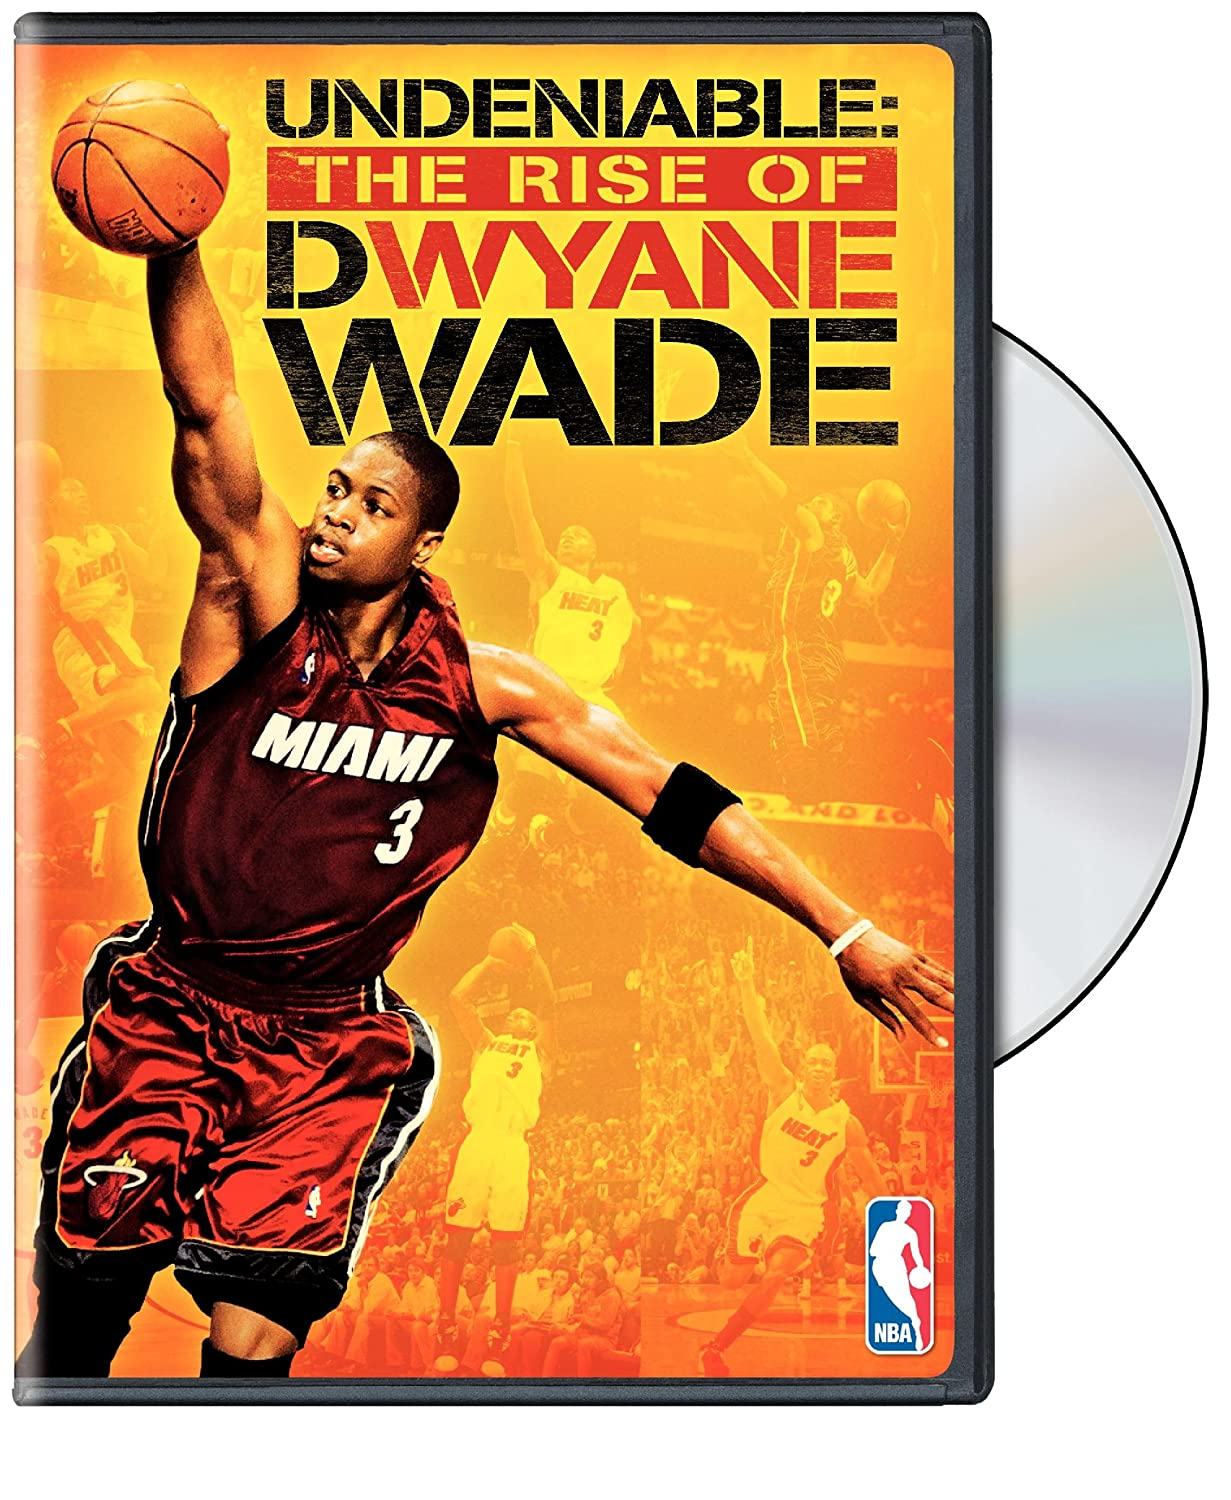 amazon com undeniable the rise of dwyane wade terrence howard